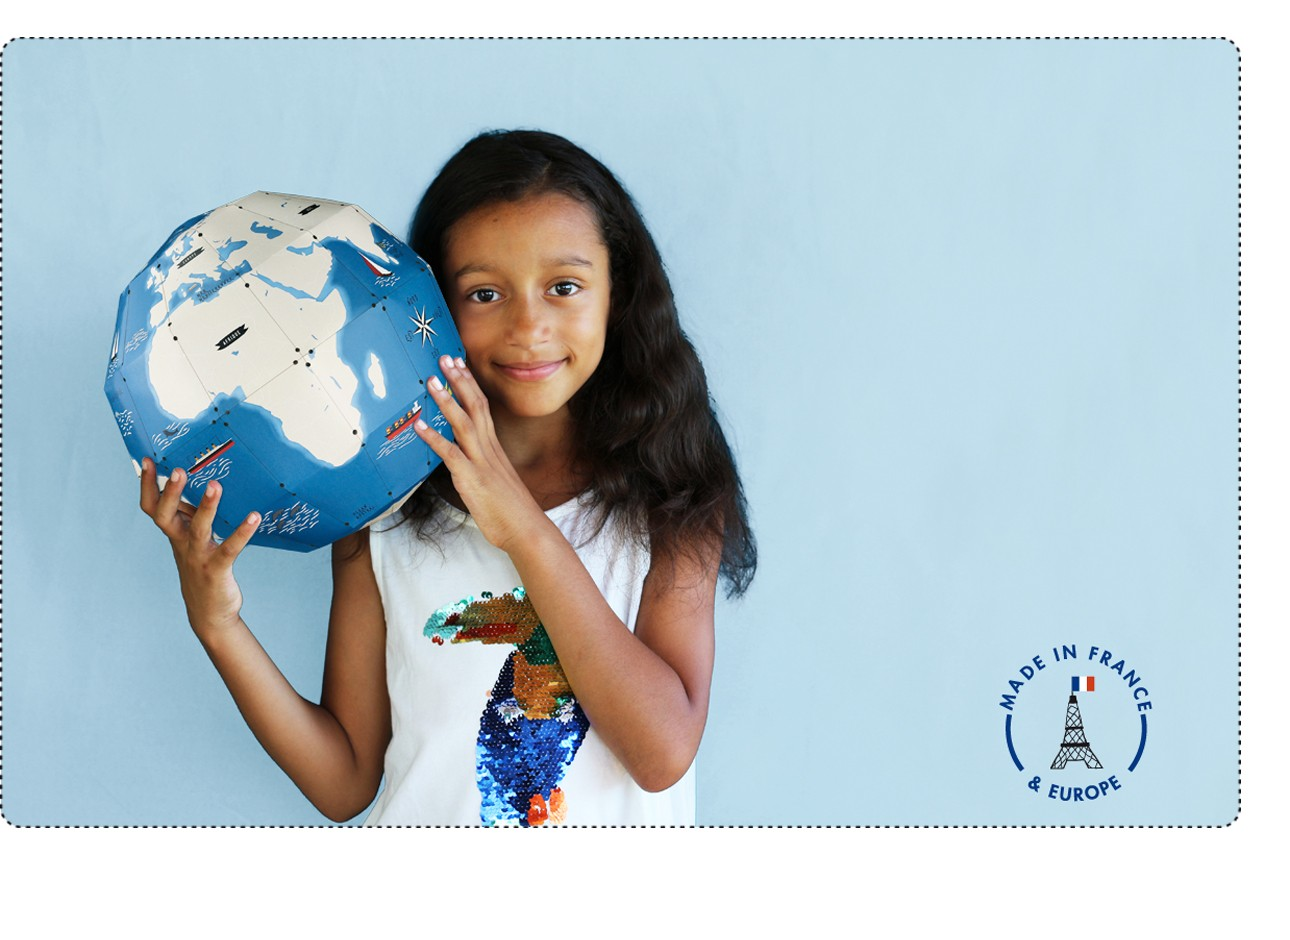 Pirouette Cacahouète, games and creative leasure created and made in France, eco friendly and funny